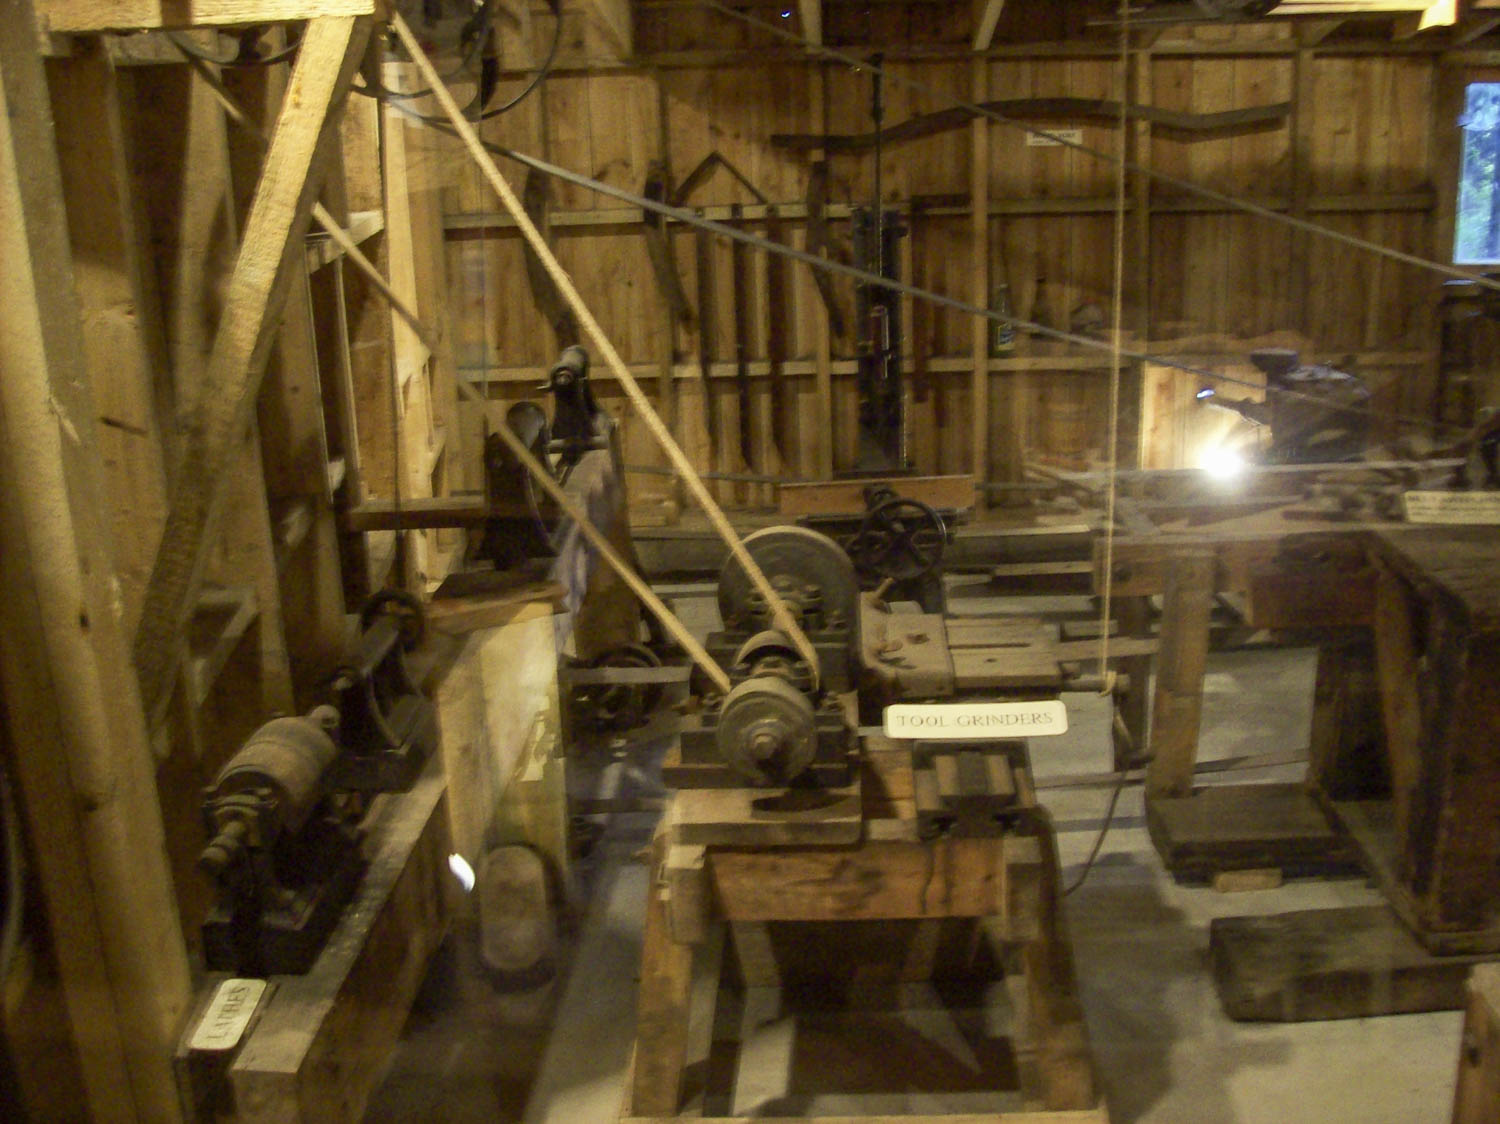 internal view of an old joinery workshop